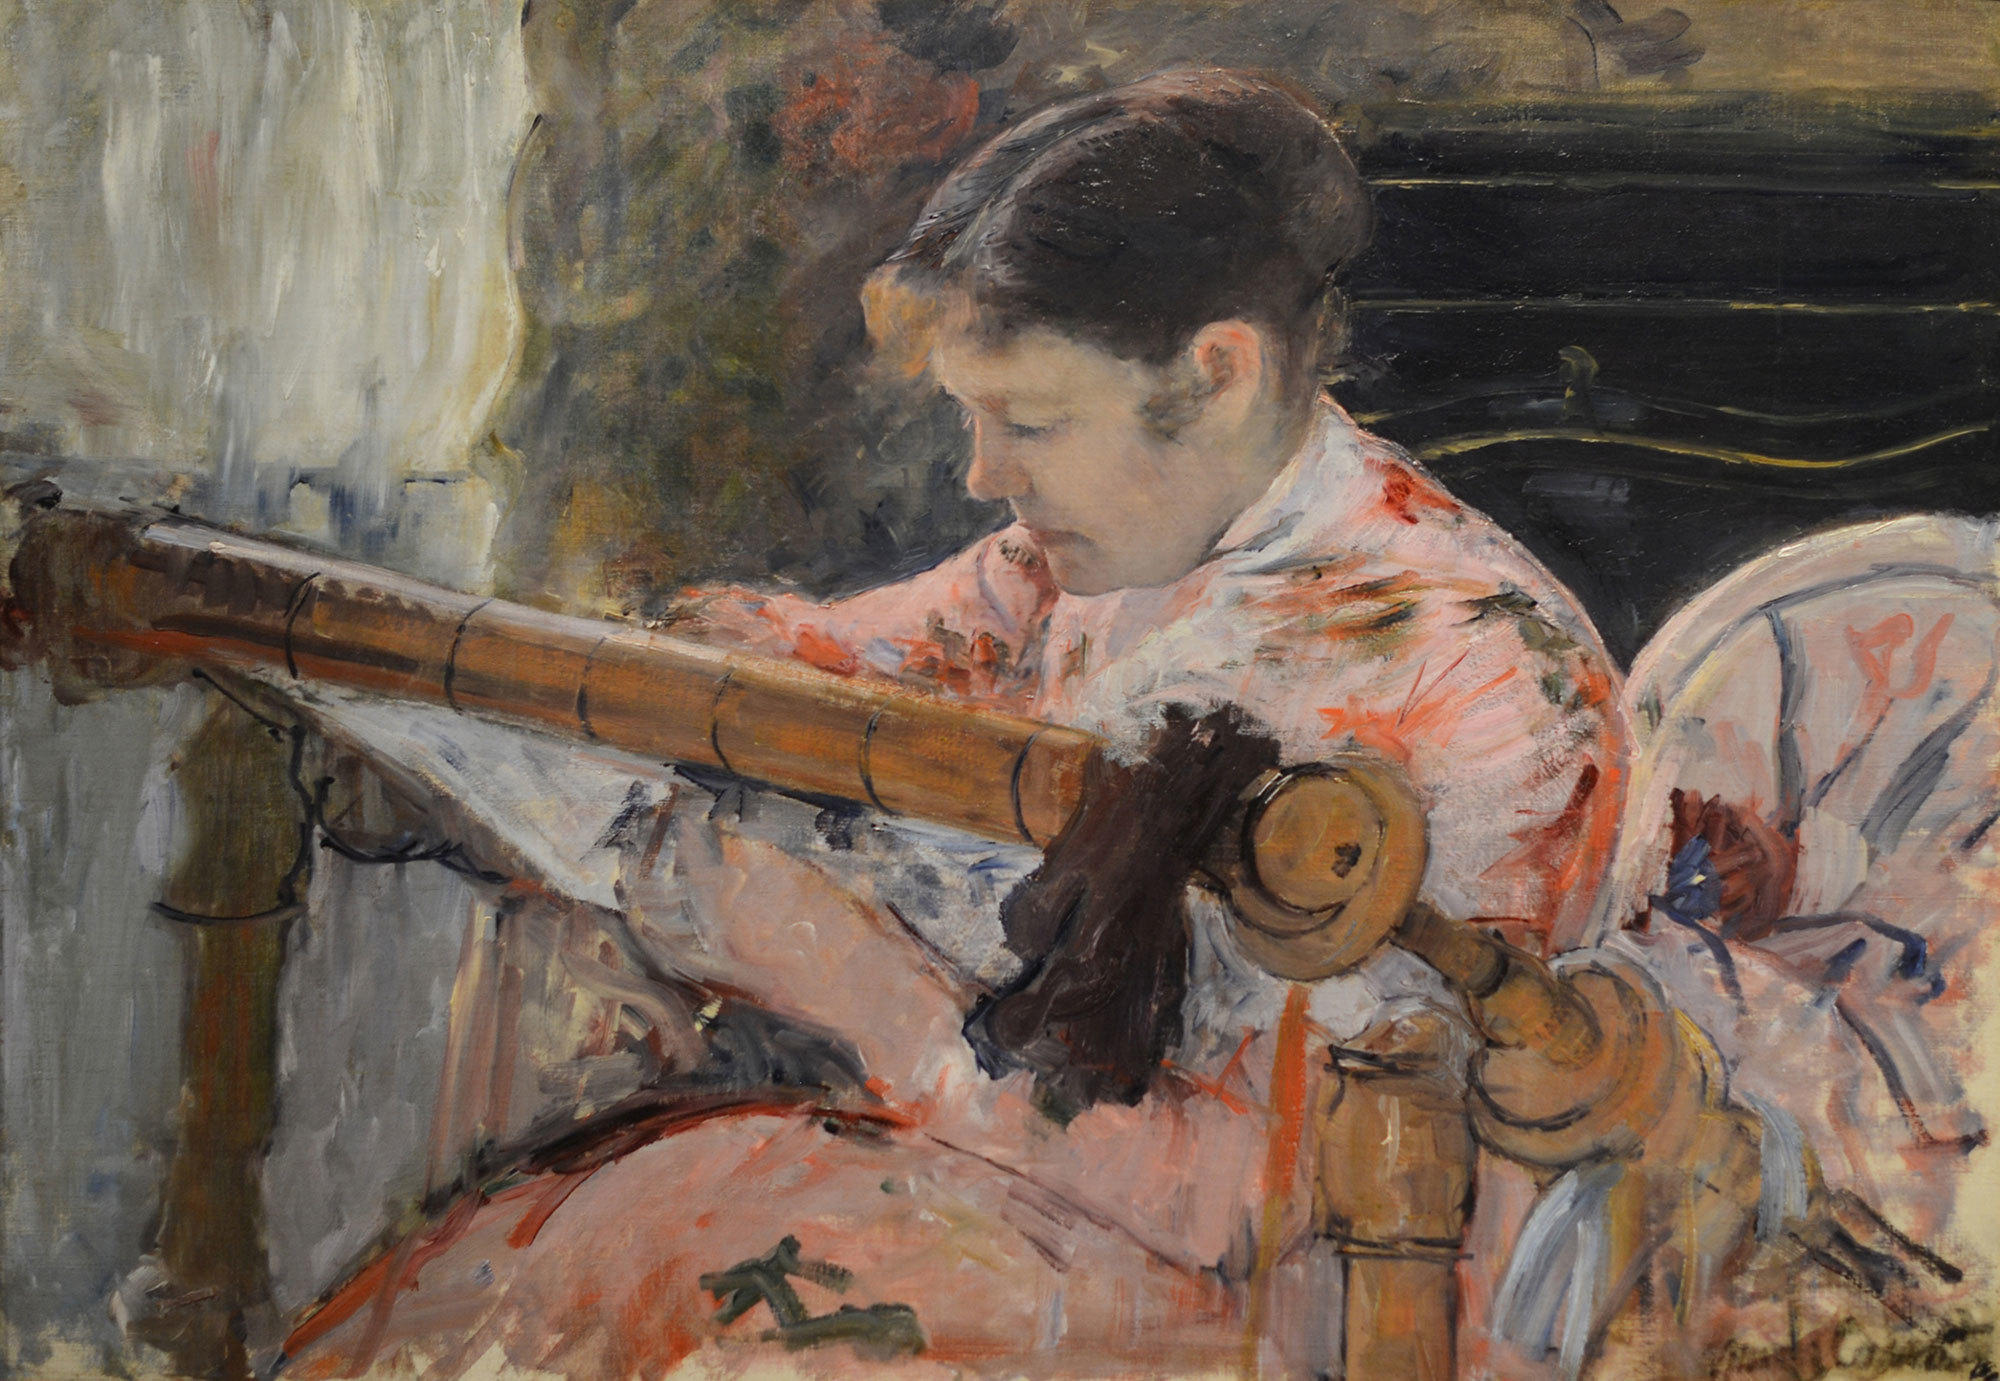 Mary Cassatt, American, 1844–1926. Lydia at a Tapestry Frame, ca. 1881. Oil on canvas, 25 5/8 × 36 3/8 in. Gift of the Whiting Foundation, 1967.32